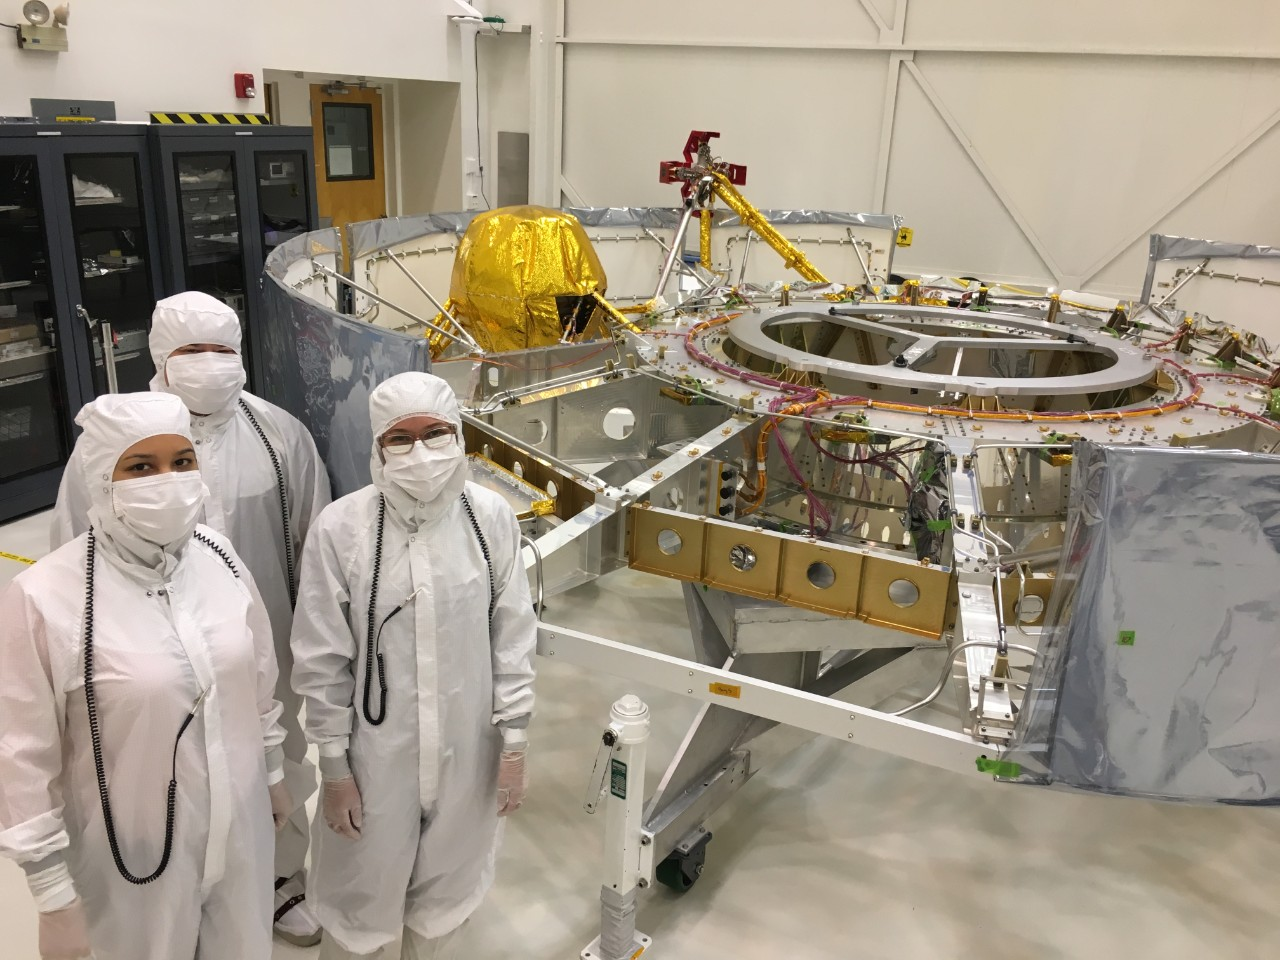 Mission possible: Perseverance and the path to Mars